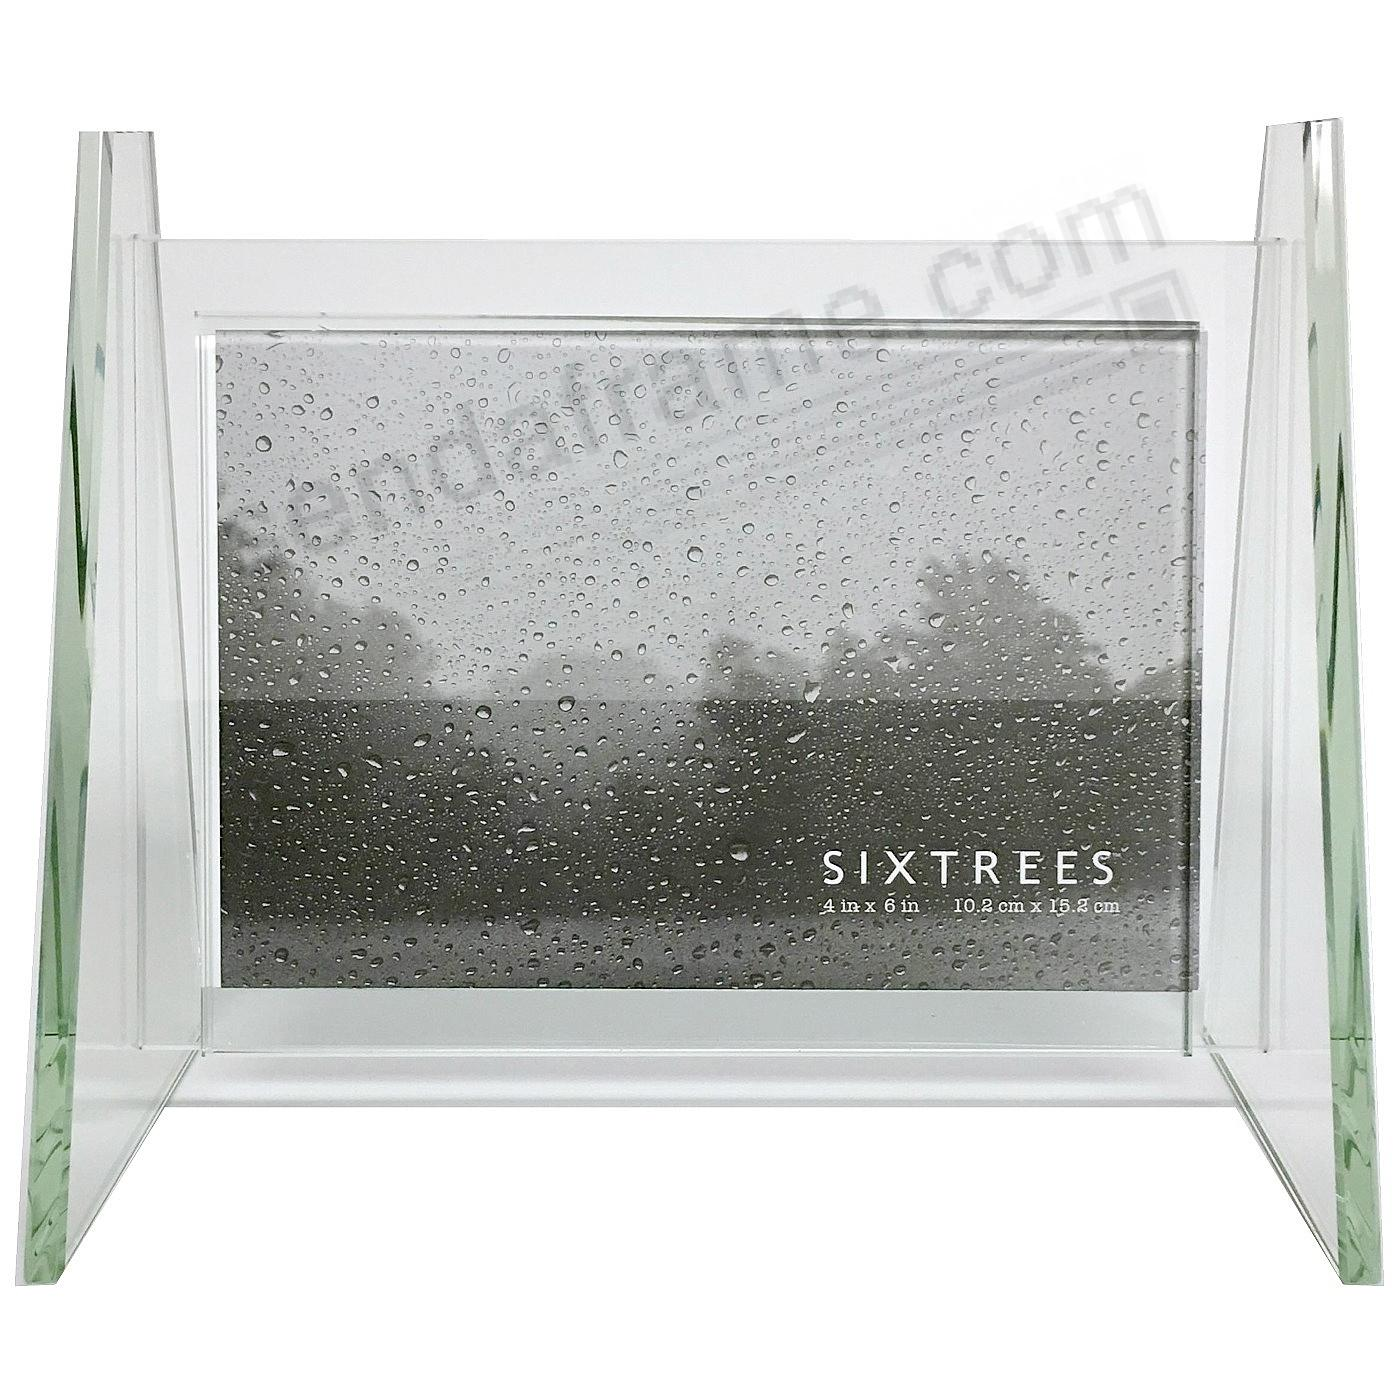 MILAN glass frame w/Side Rail Stand for your 6x4 print by Sixtrees®